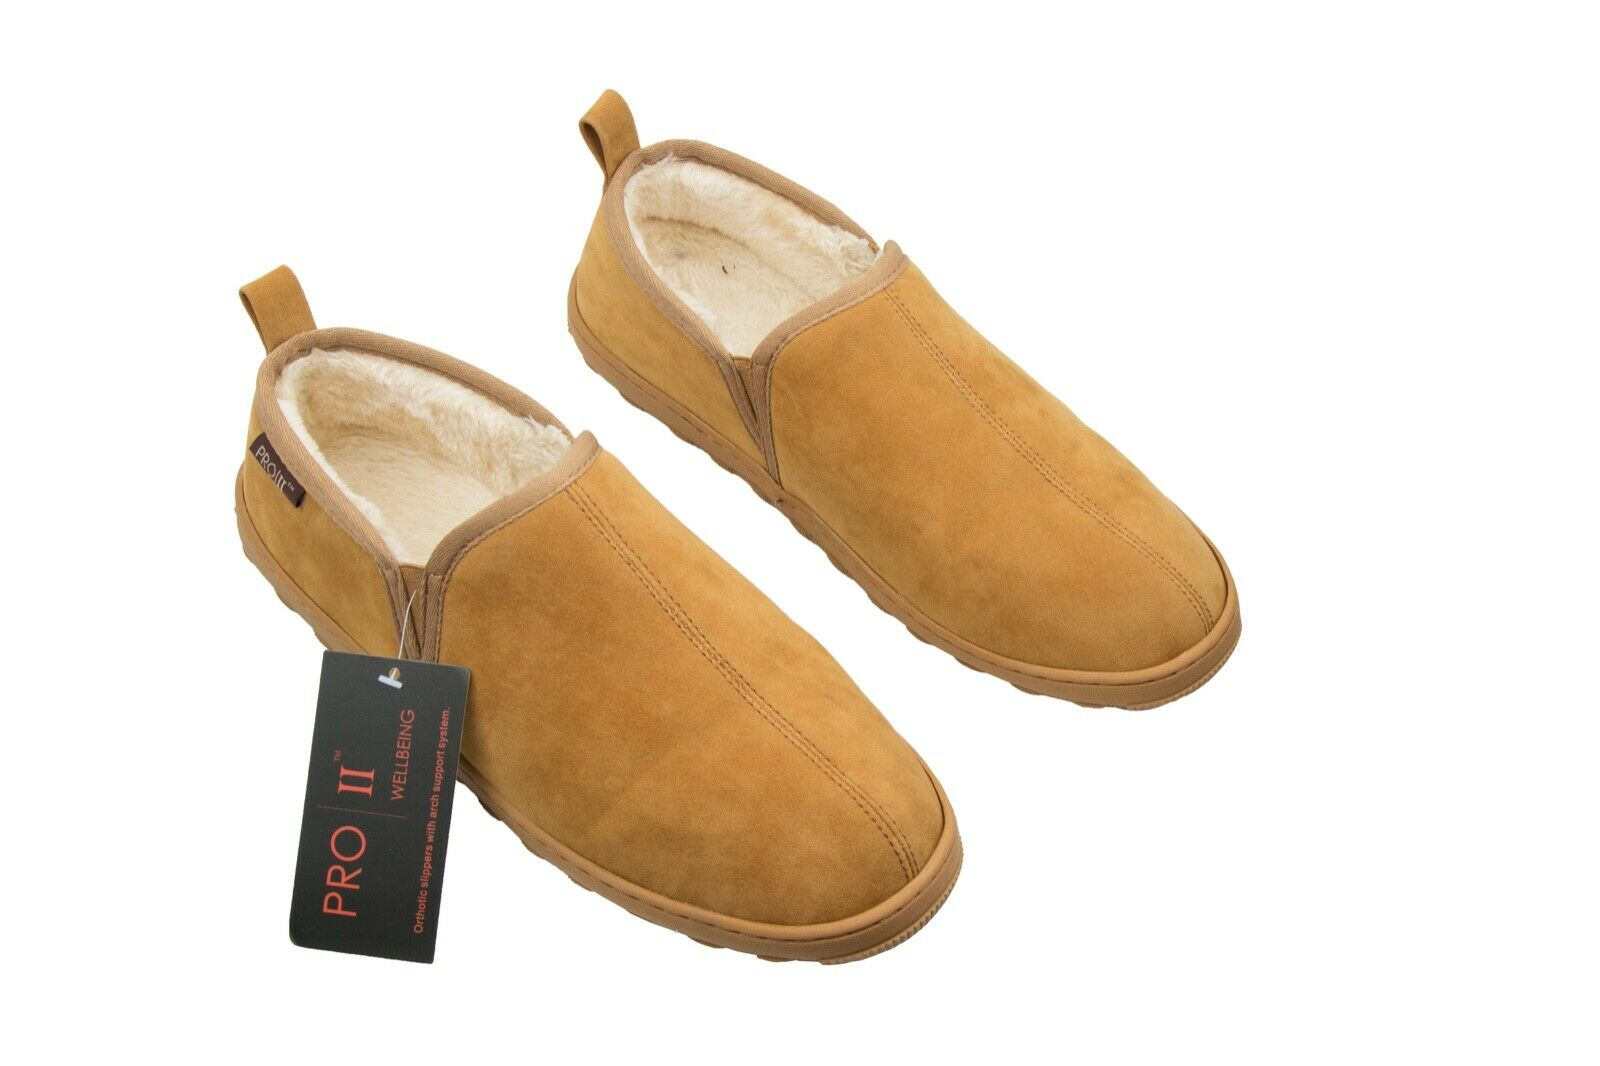 Pro 11 wellbeing orthotic slippers with soft comfortable lining